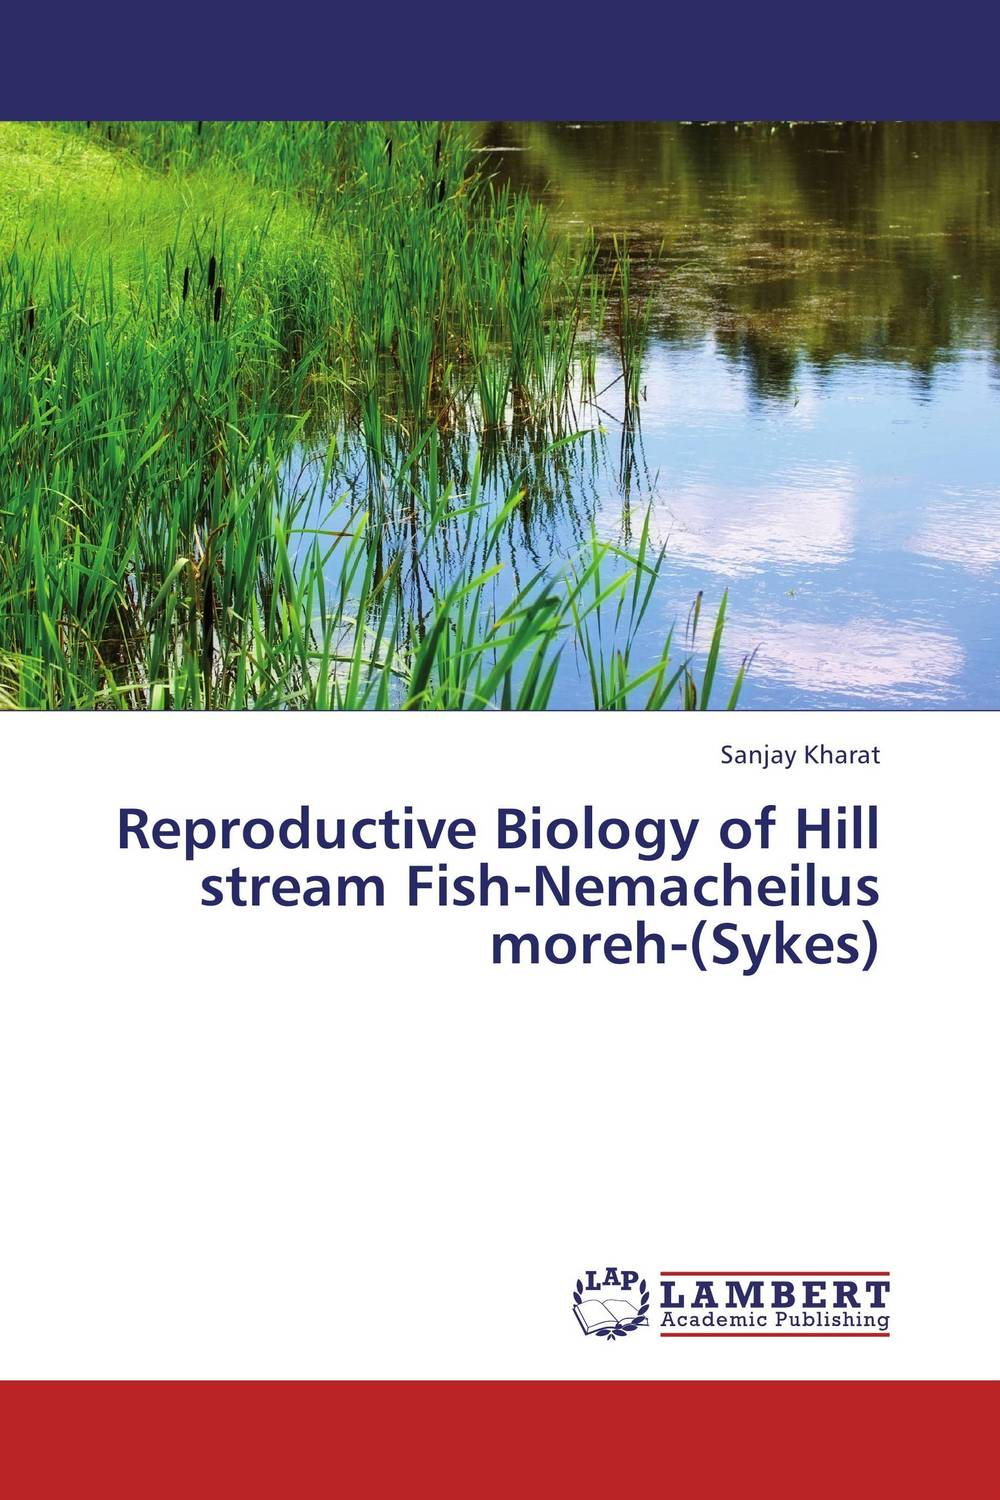 Reproductive Biology of Hill stream Fish-Nemacheilus moreh-(Sykes) streams of stream classifications